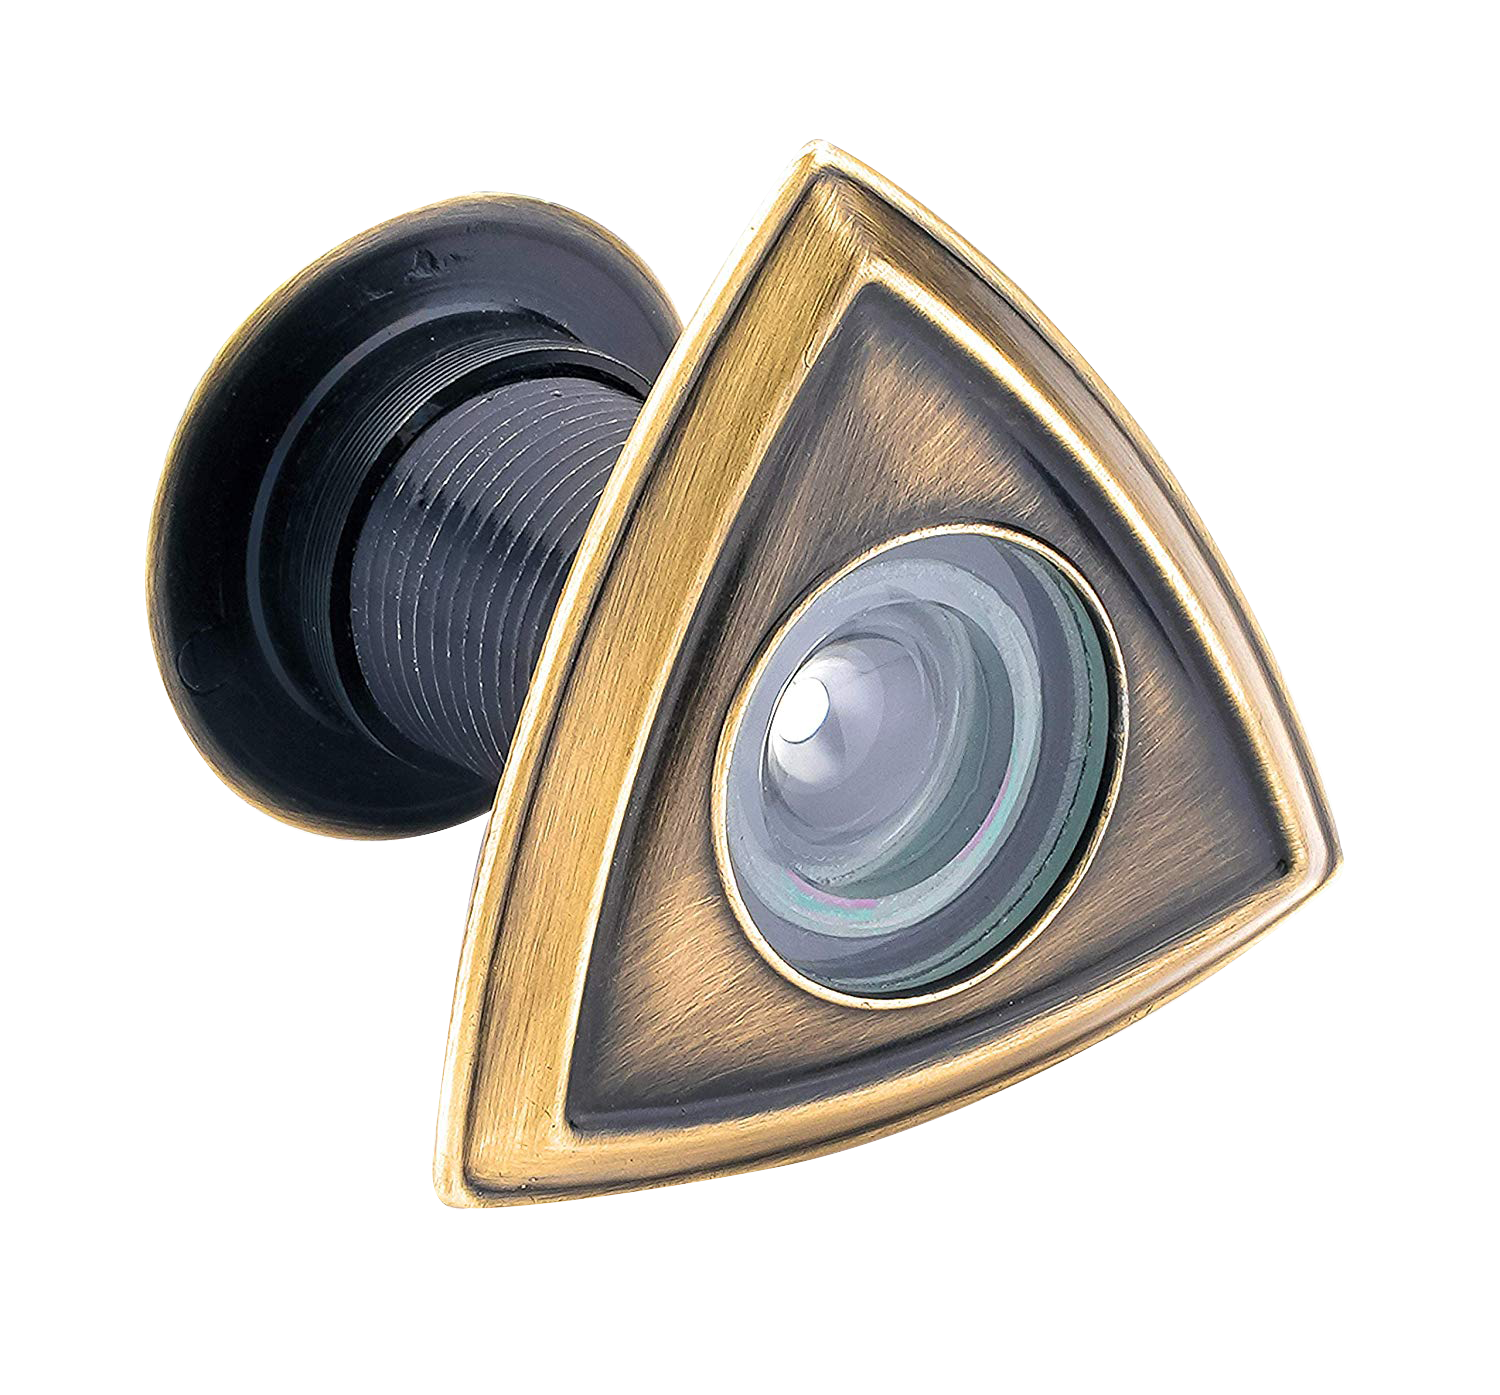 eyeberry-pyramid-door-viewer-door-eye-ultra-clear-180-degree-brand-eye-berry